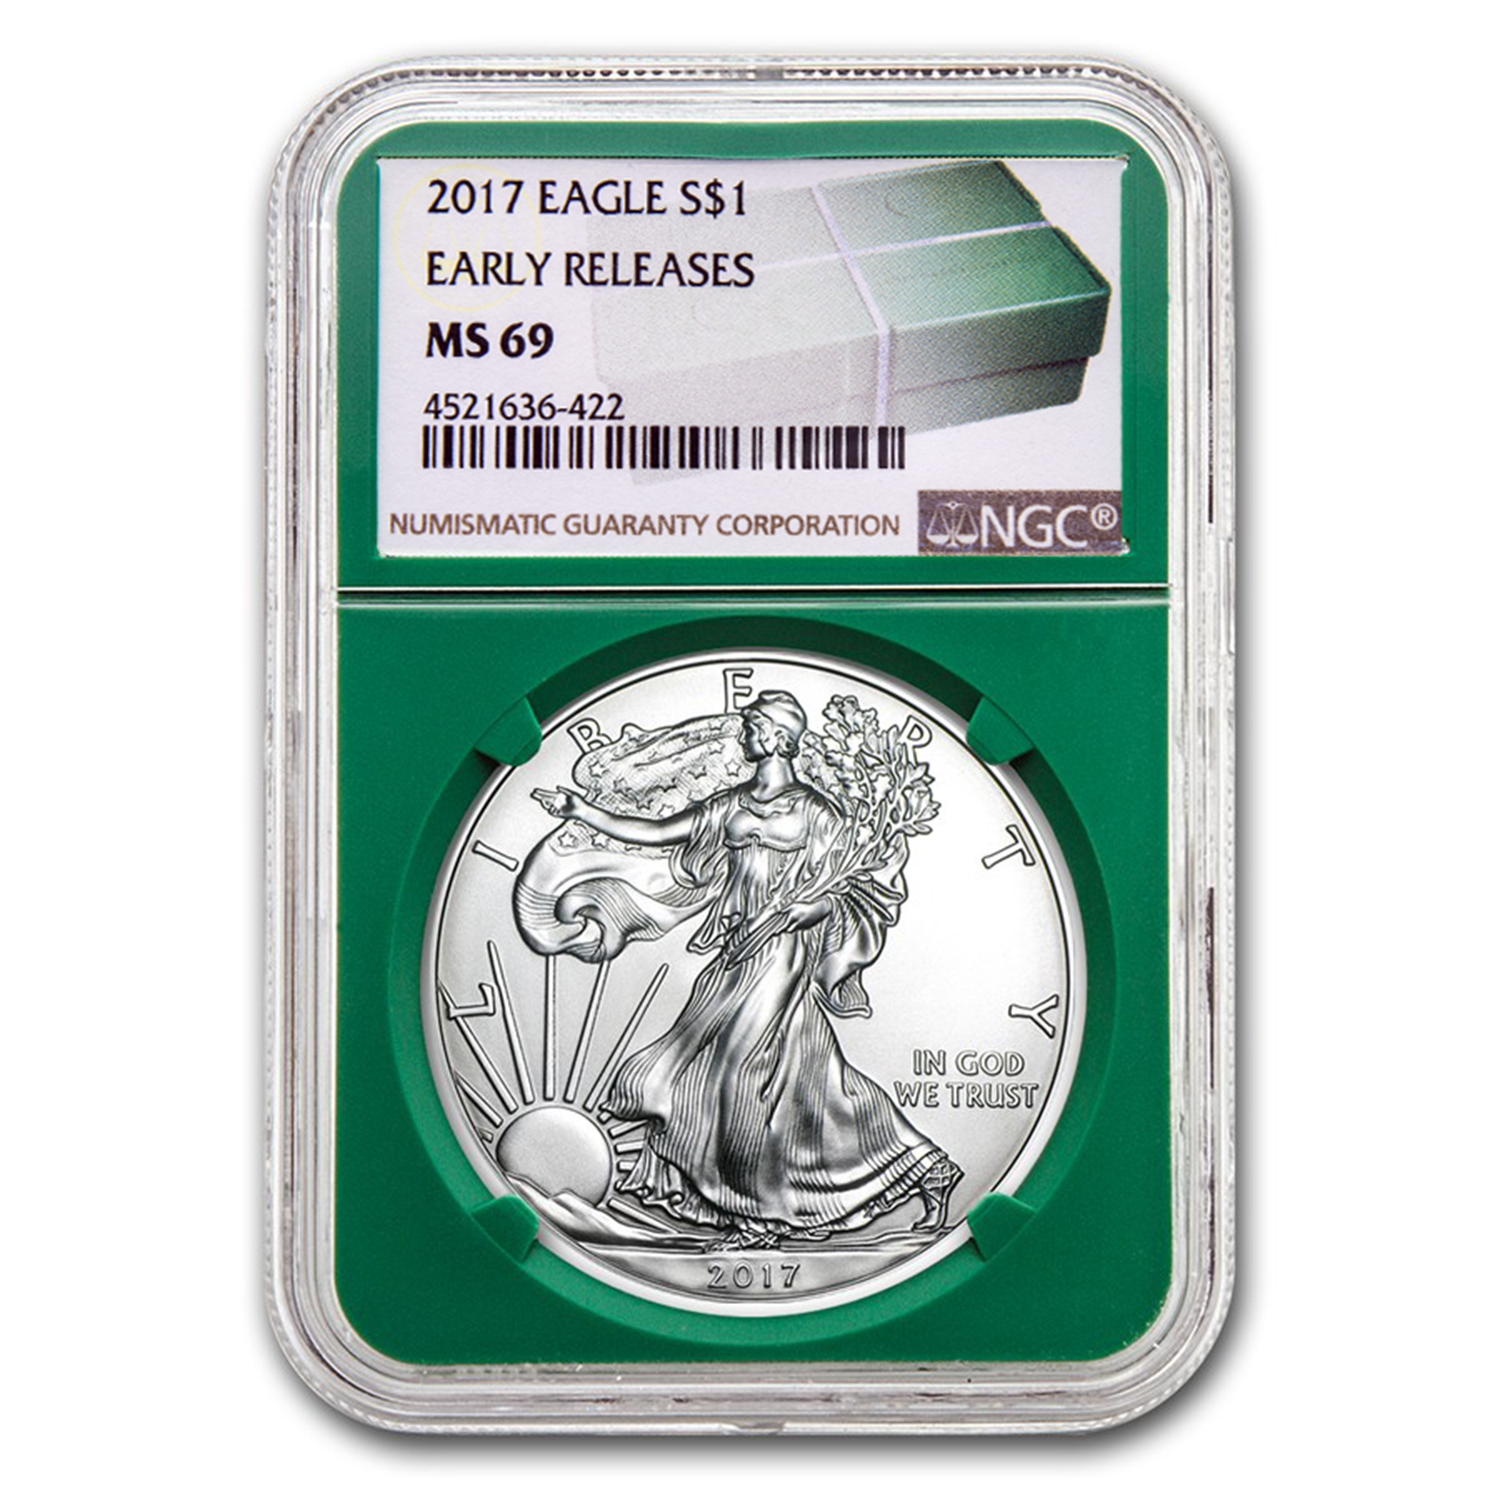 2017 Silver American Eagle MS-69 NGC (ER, Green Holder)